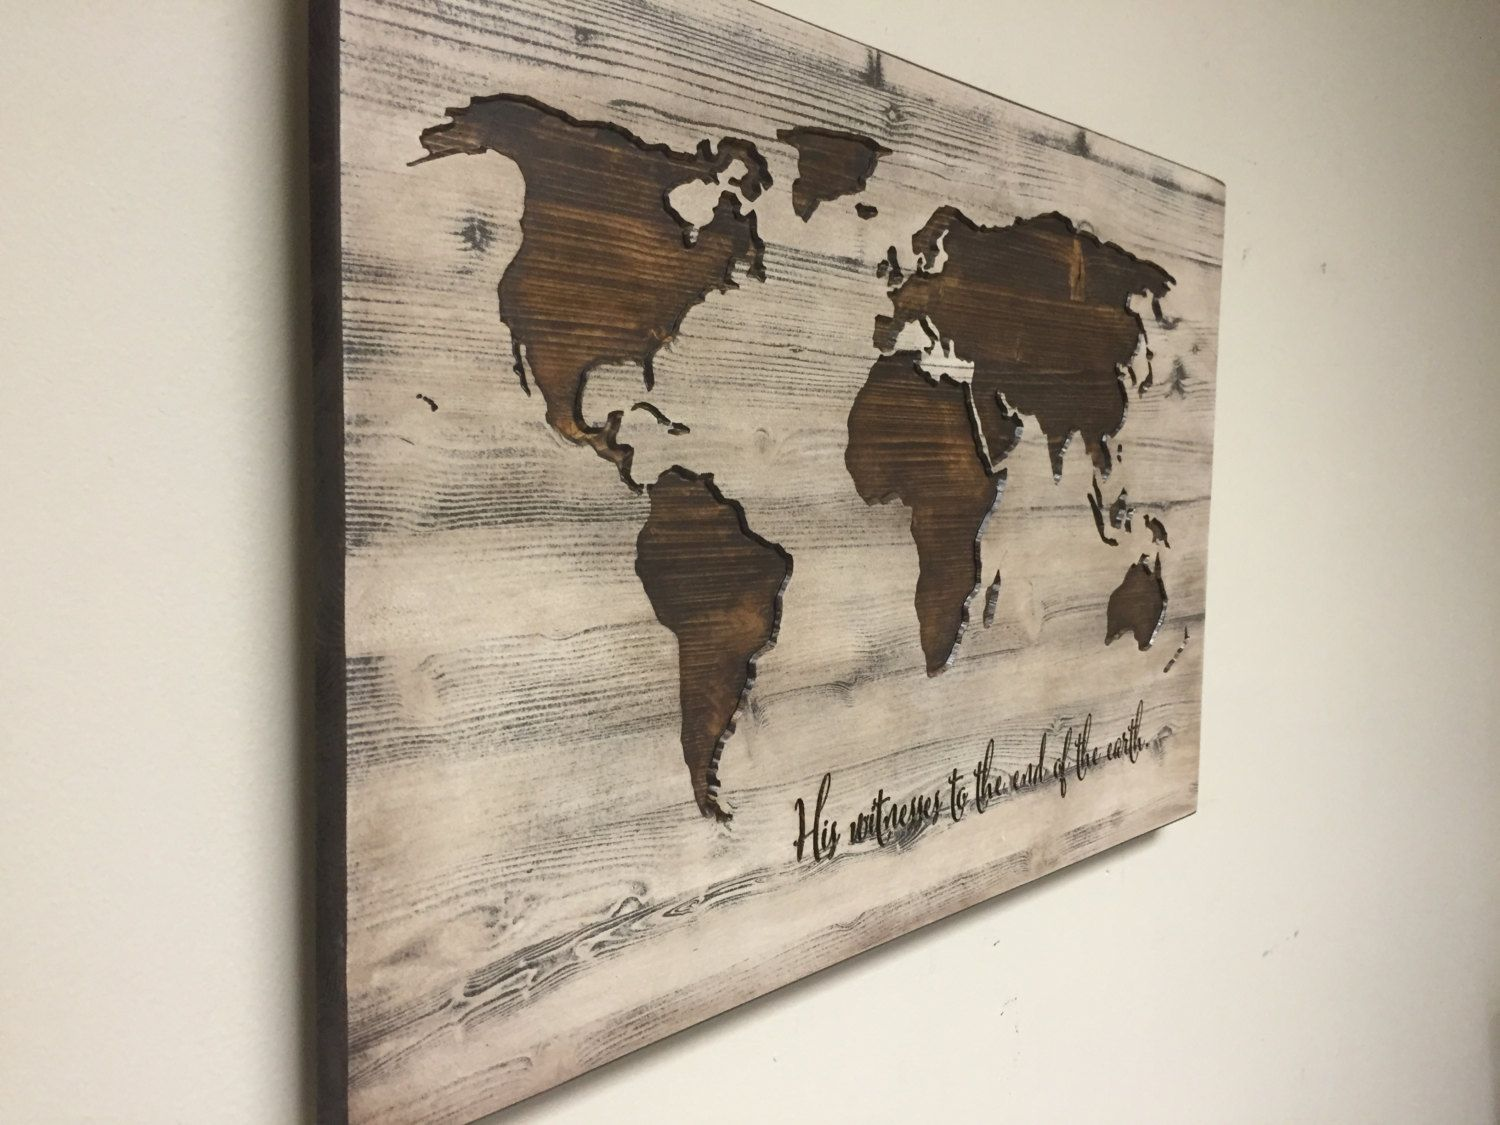 World Map Wall Art Spiritual Vintage Carved Wood Map His Witness To The End Of Earth Modern Rustic Home Decor Large Custom Personalized